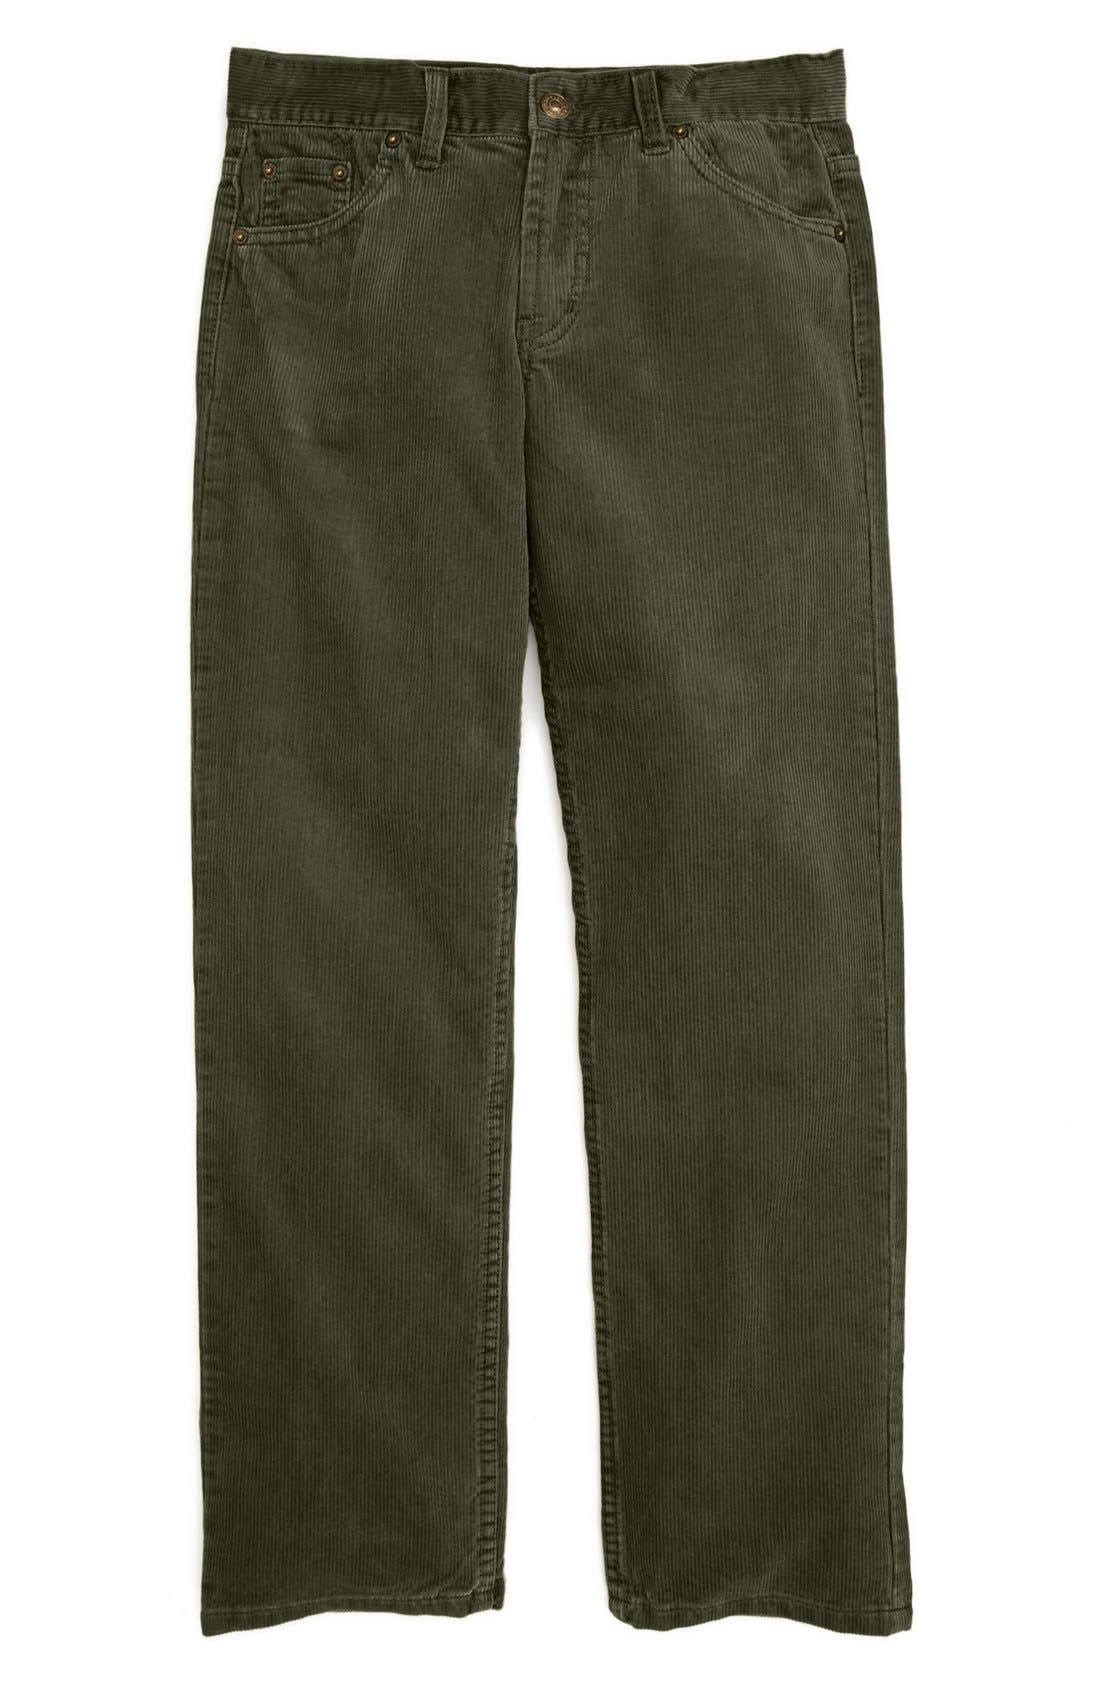 Alternate Image 1 Selected - Oscar de la Renta Corduroy Pants (Toddler Boys, Little Boys & Big Boys)